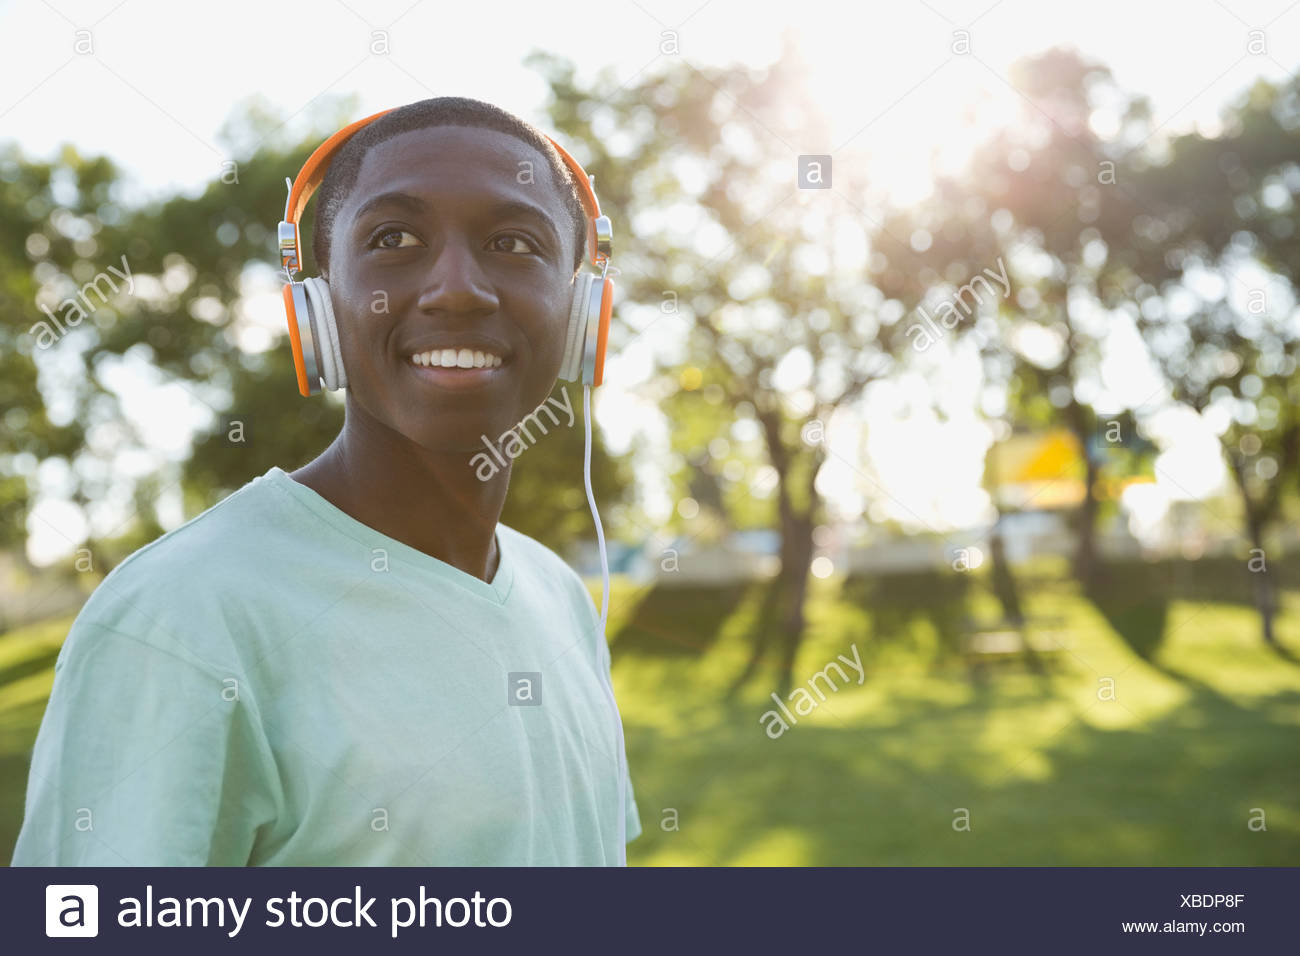 Smiling teen with headphones on - Stock Image